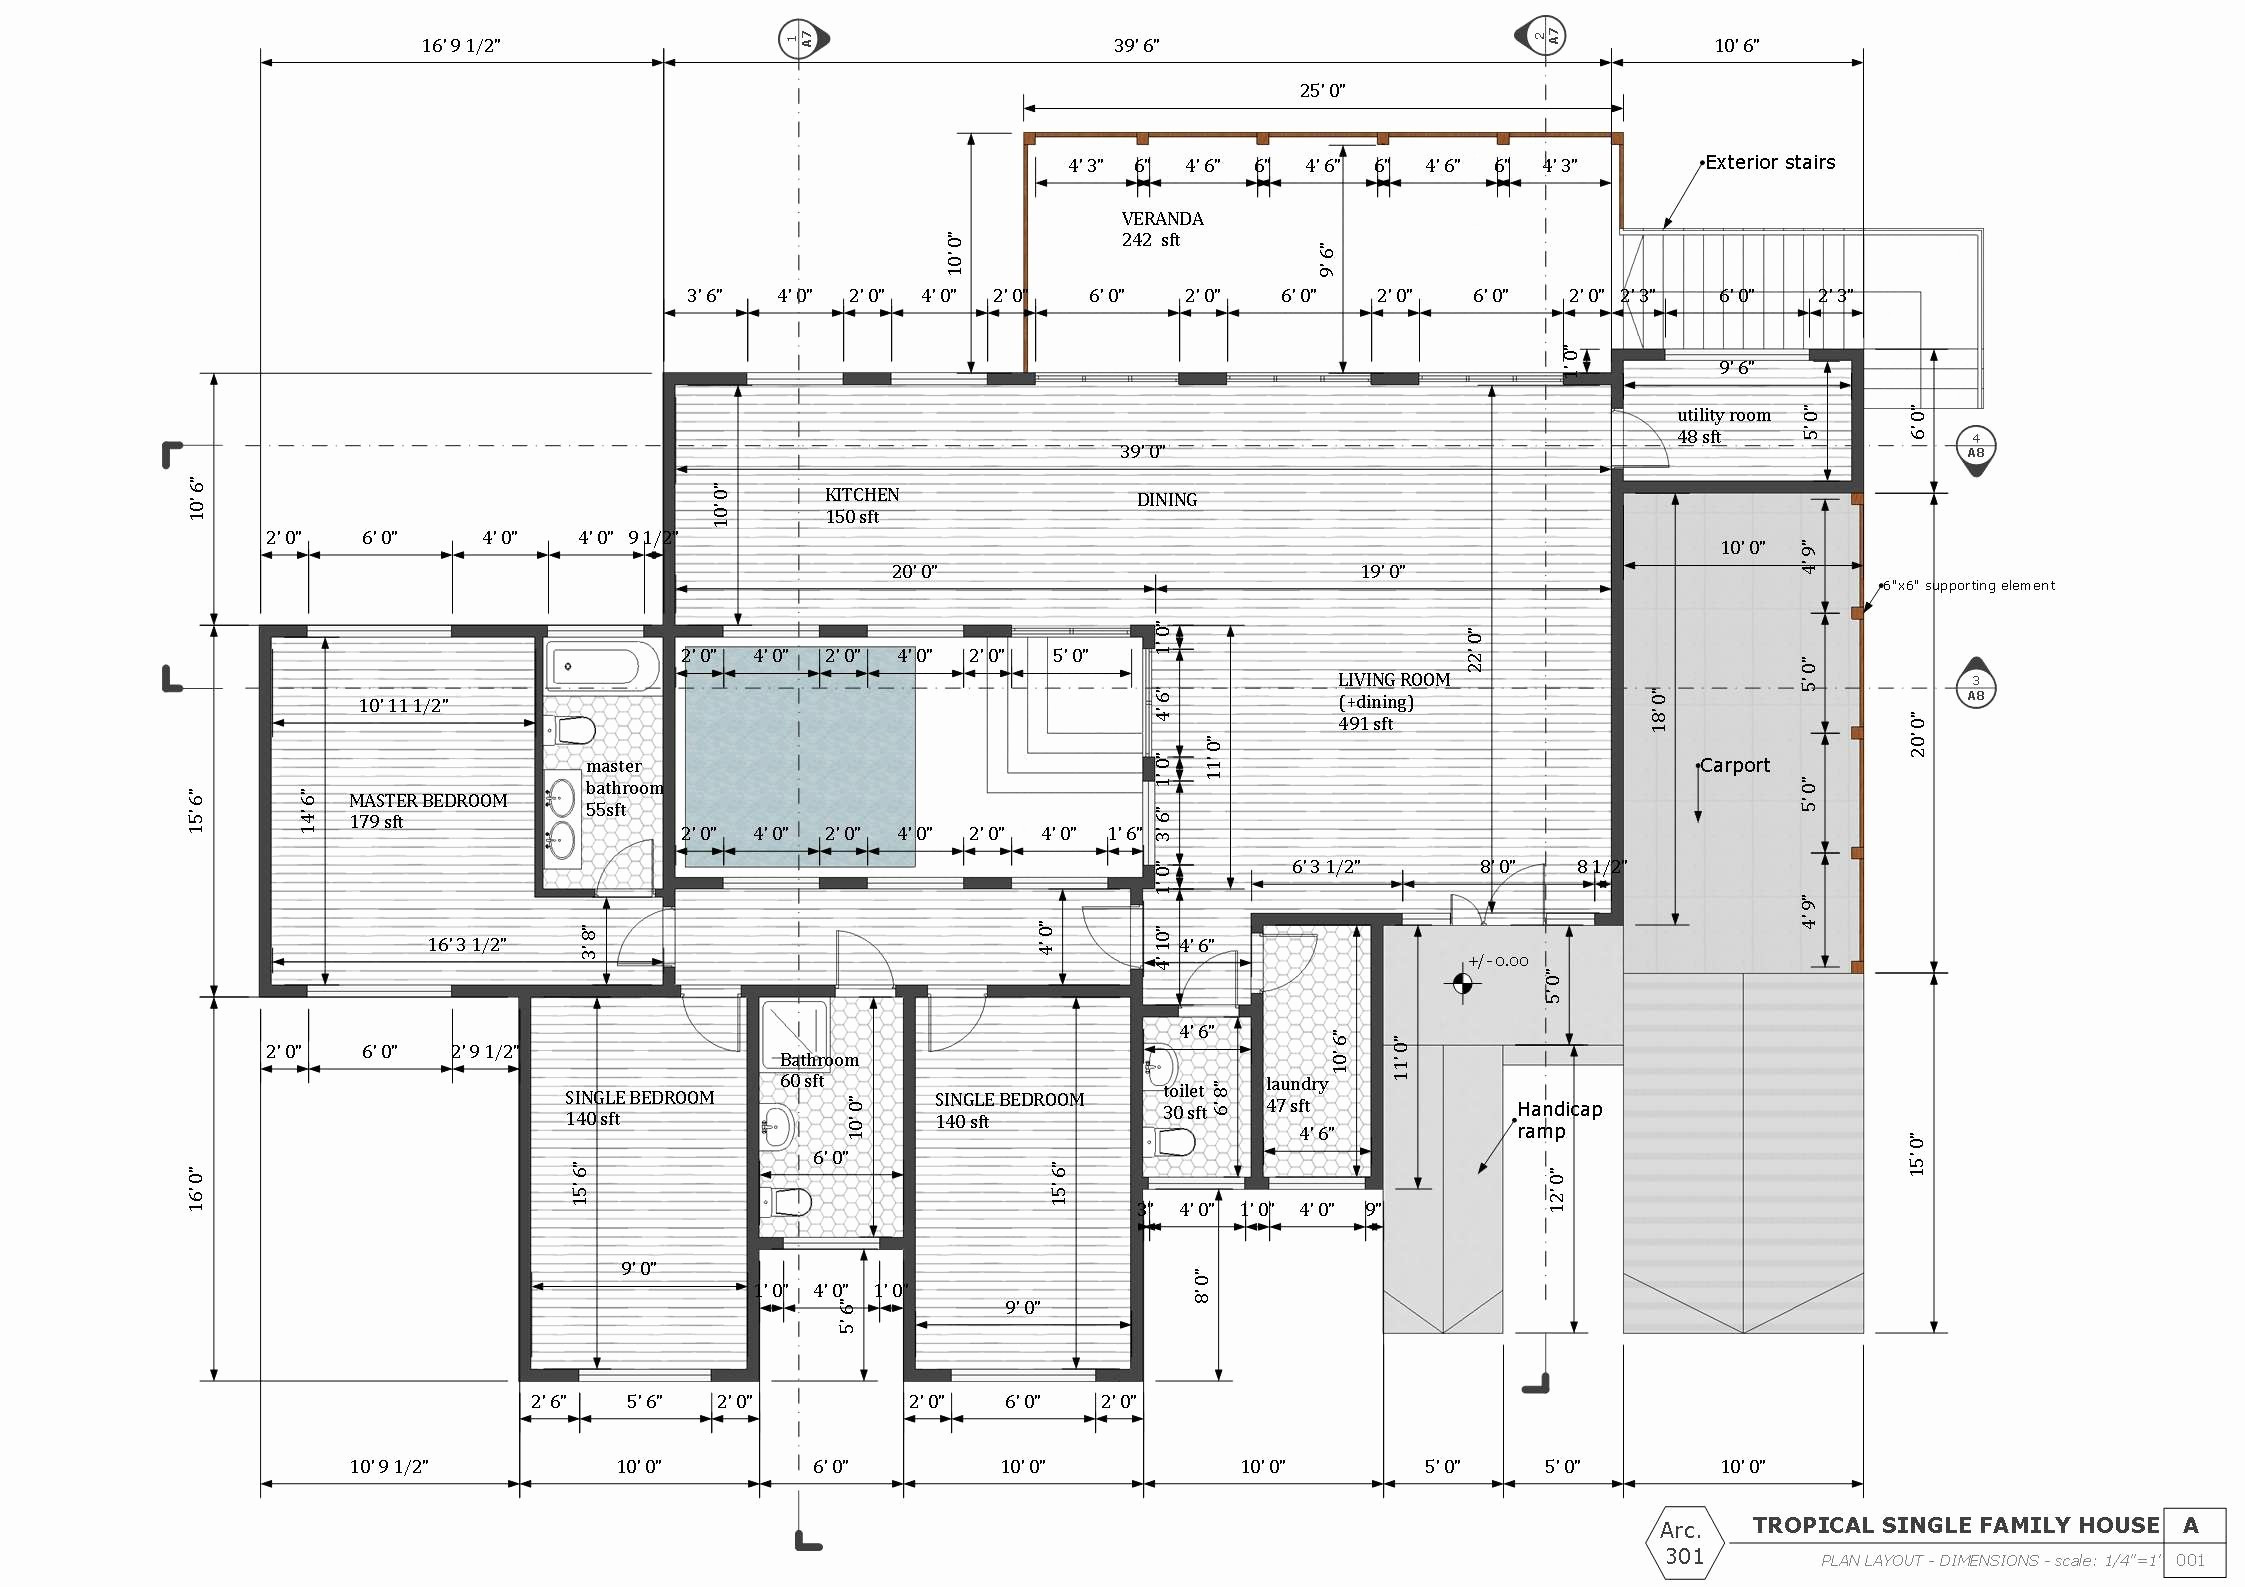 Hardwood Flooring Sizes Of Kitchen Floor Plan Dimensions Unique Floor Plan Best Long House Inside Kitchen Floor Plan Dimensions Fresh Public Restroom Floor Plan Best Bathroom Floor Plans by Size Of